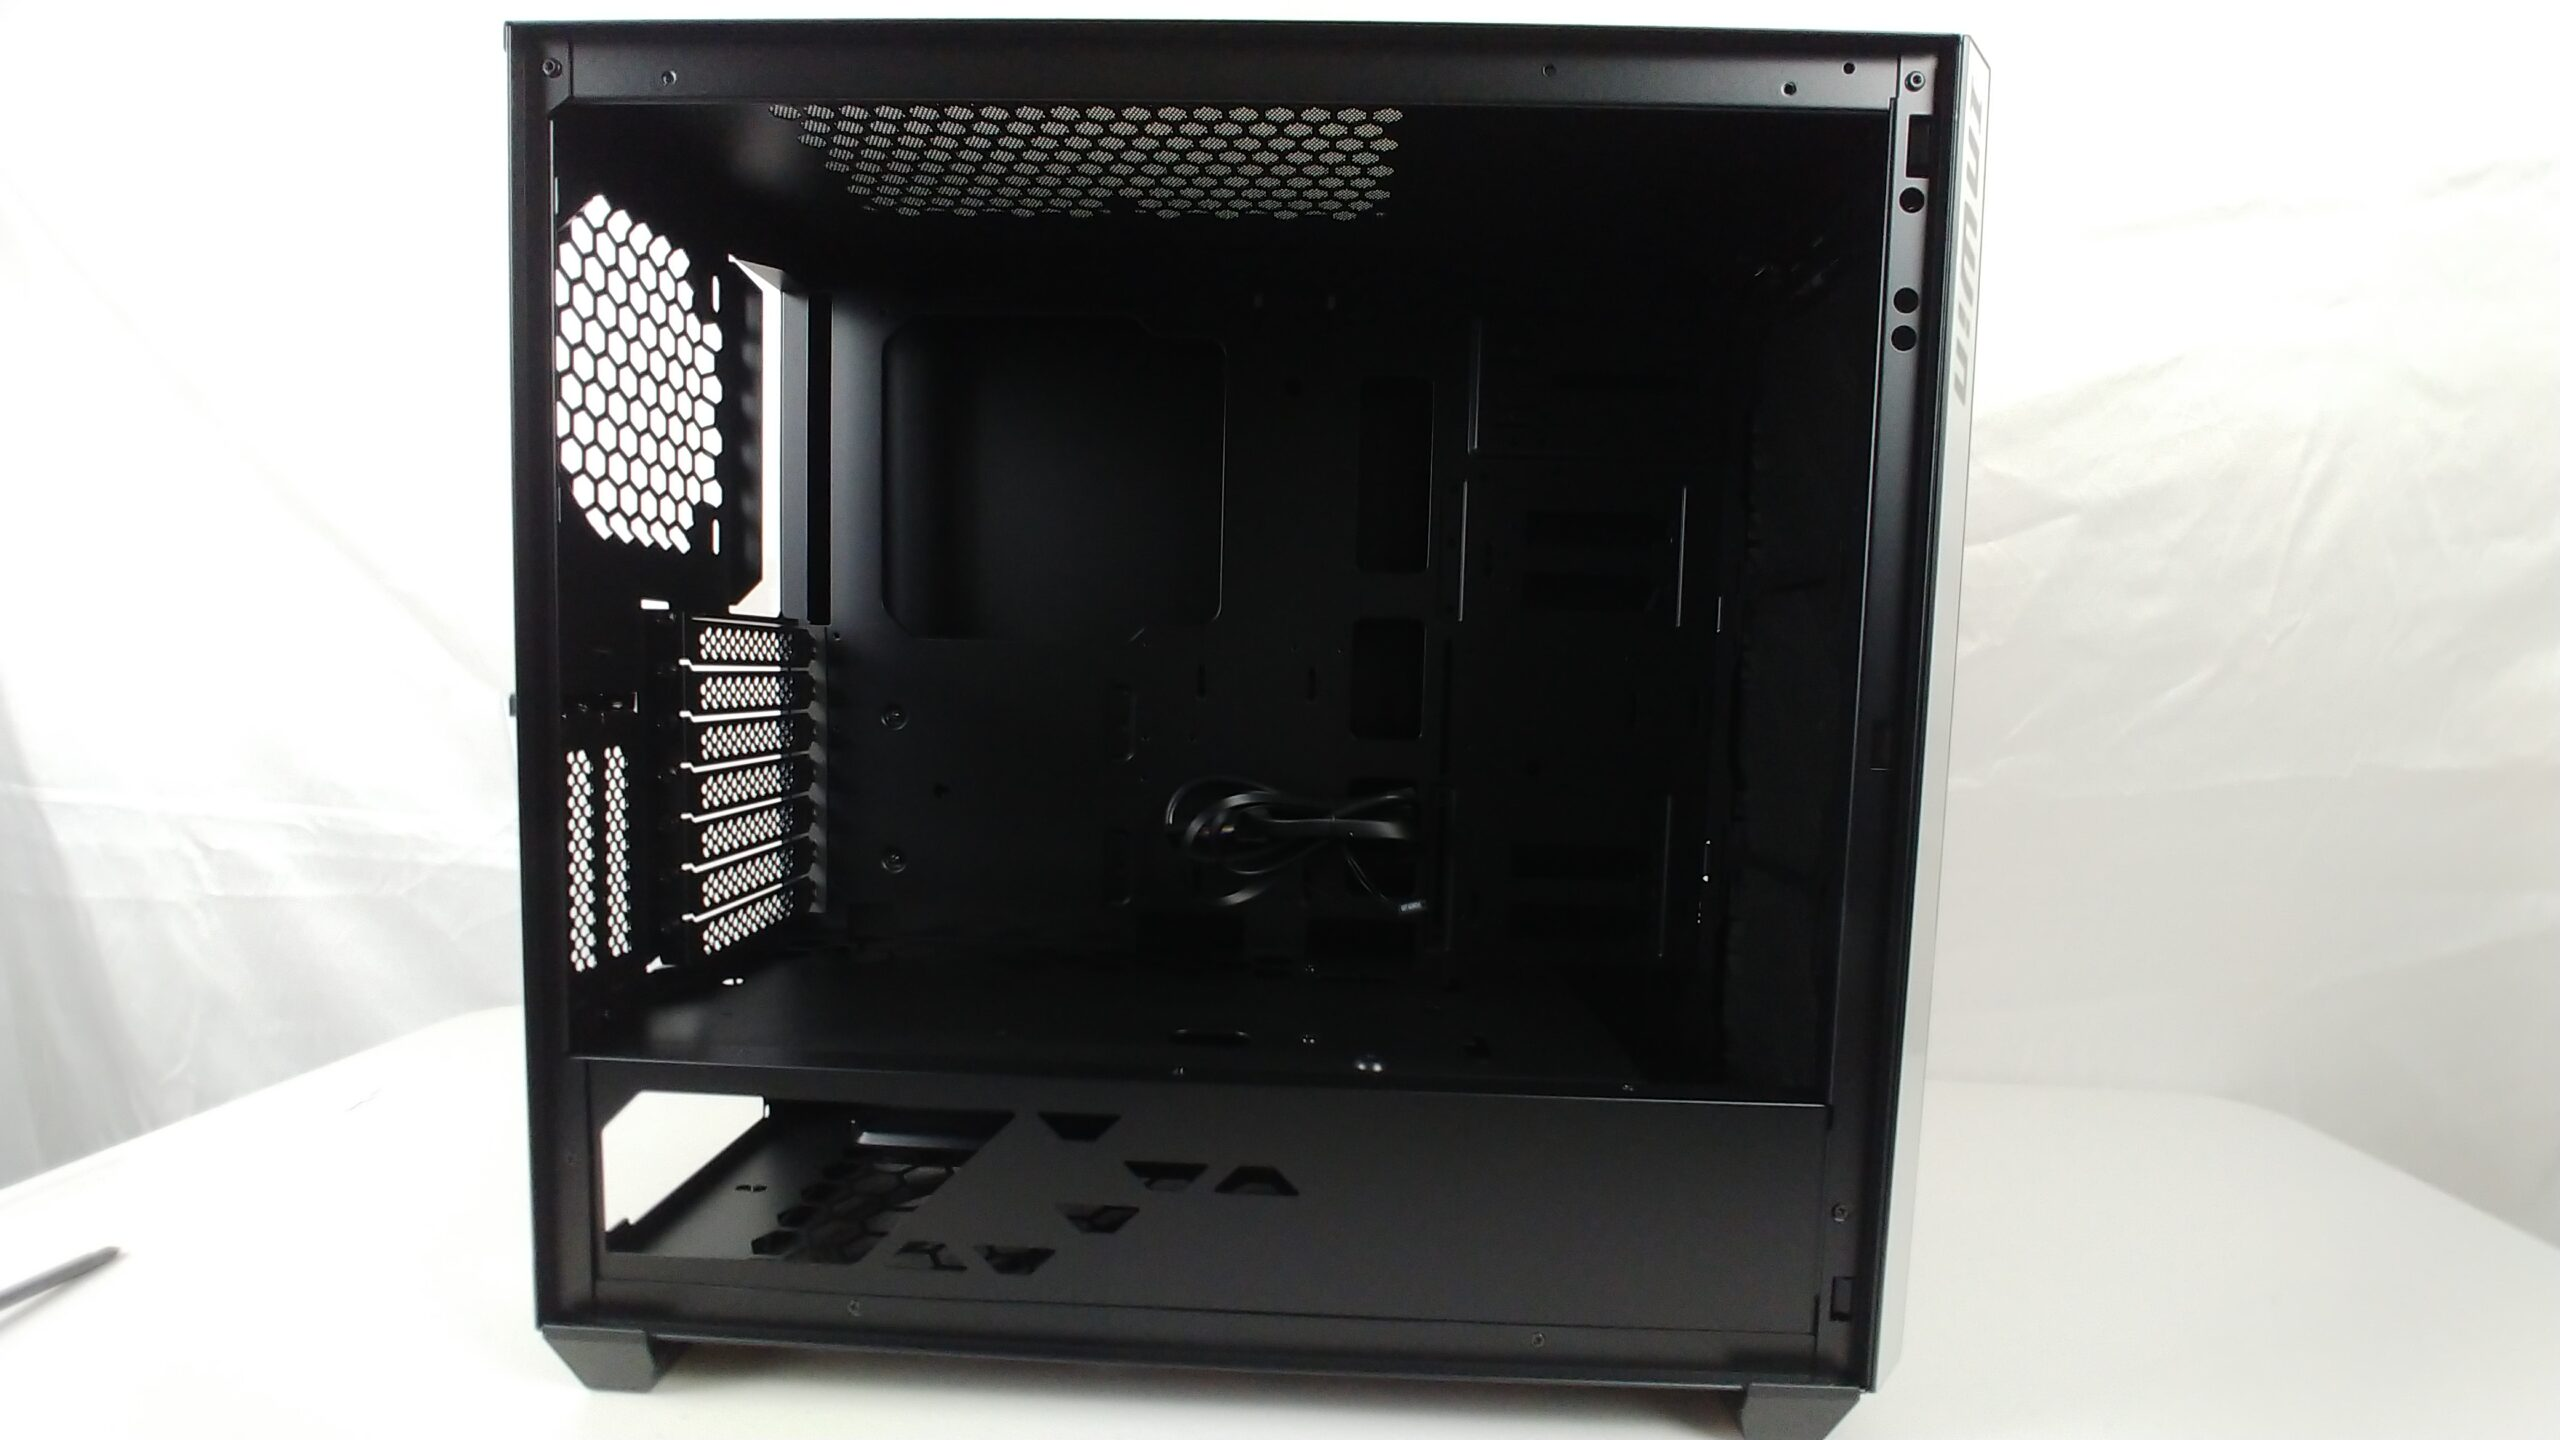 Side angled view of the InWin 216 without the tempered glass.